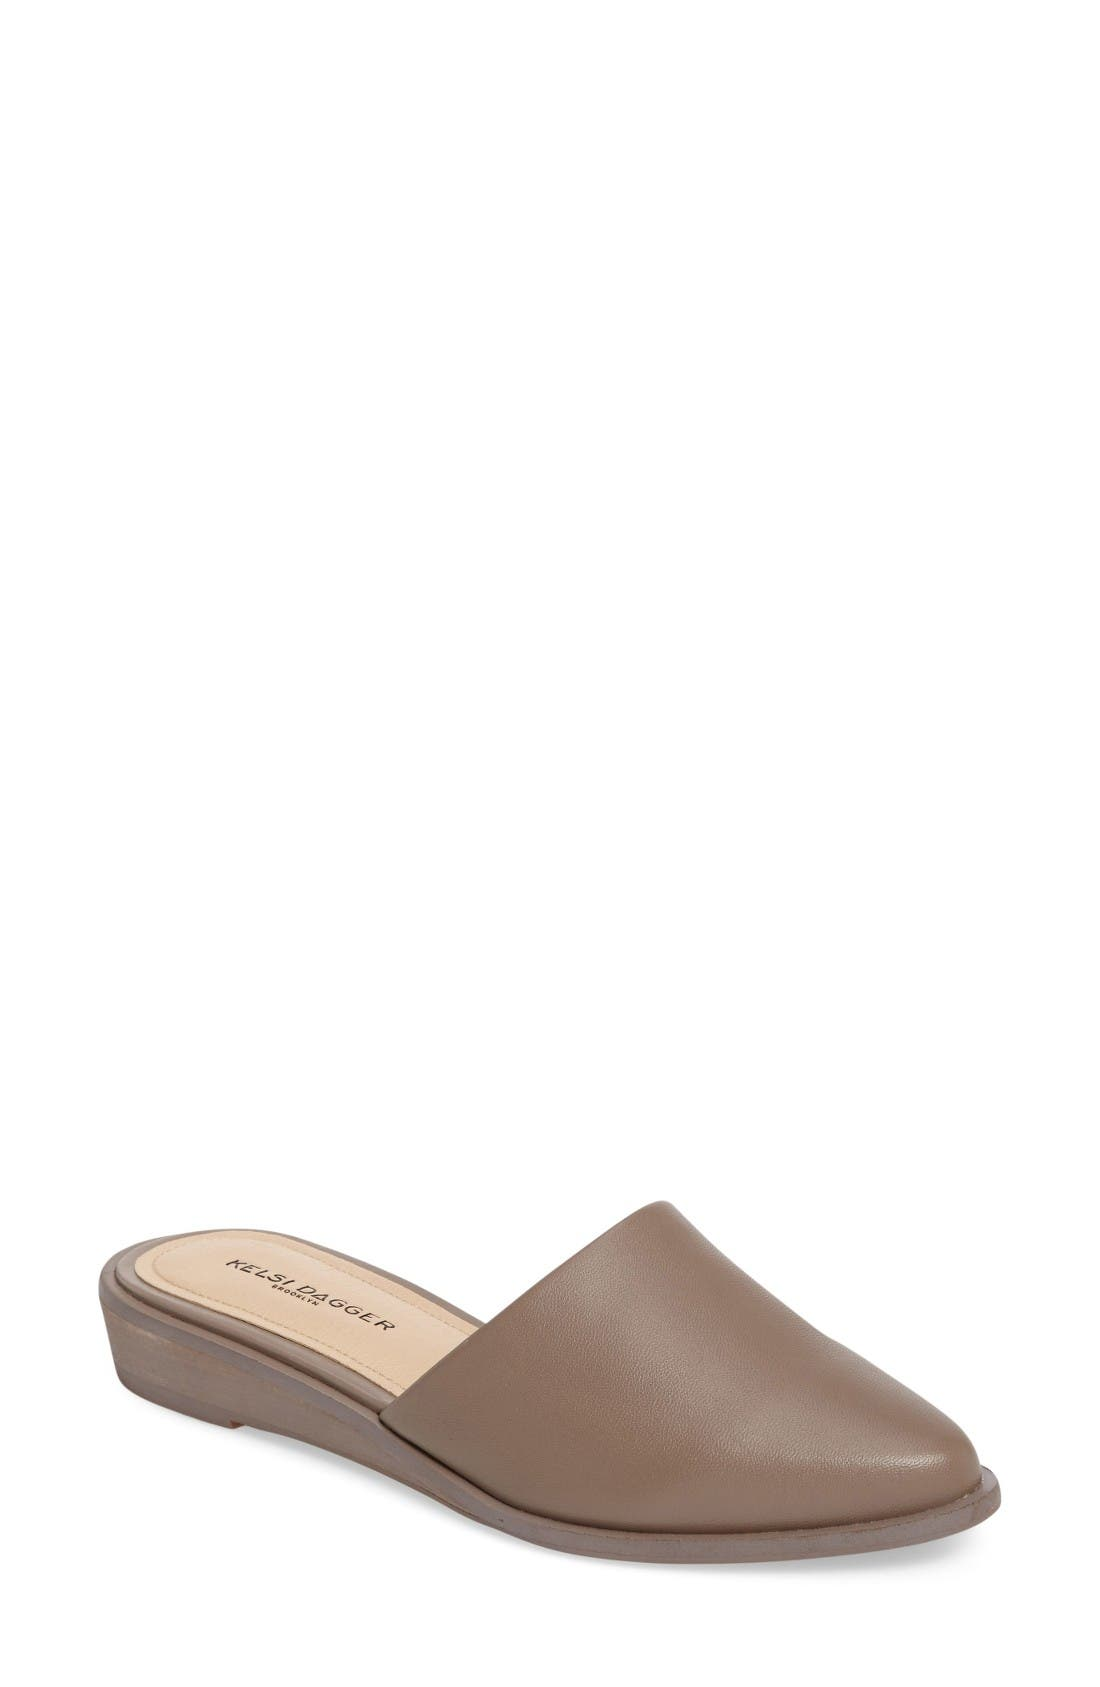 KELSI DAGGER BROOKLYN Amory Wedge Slide